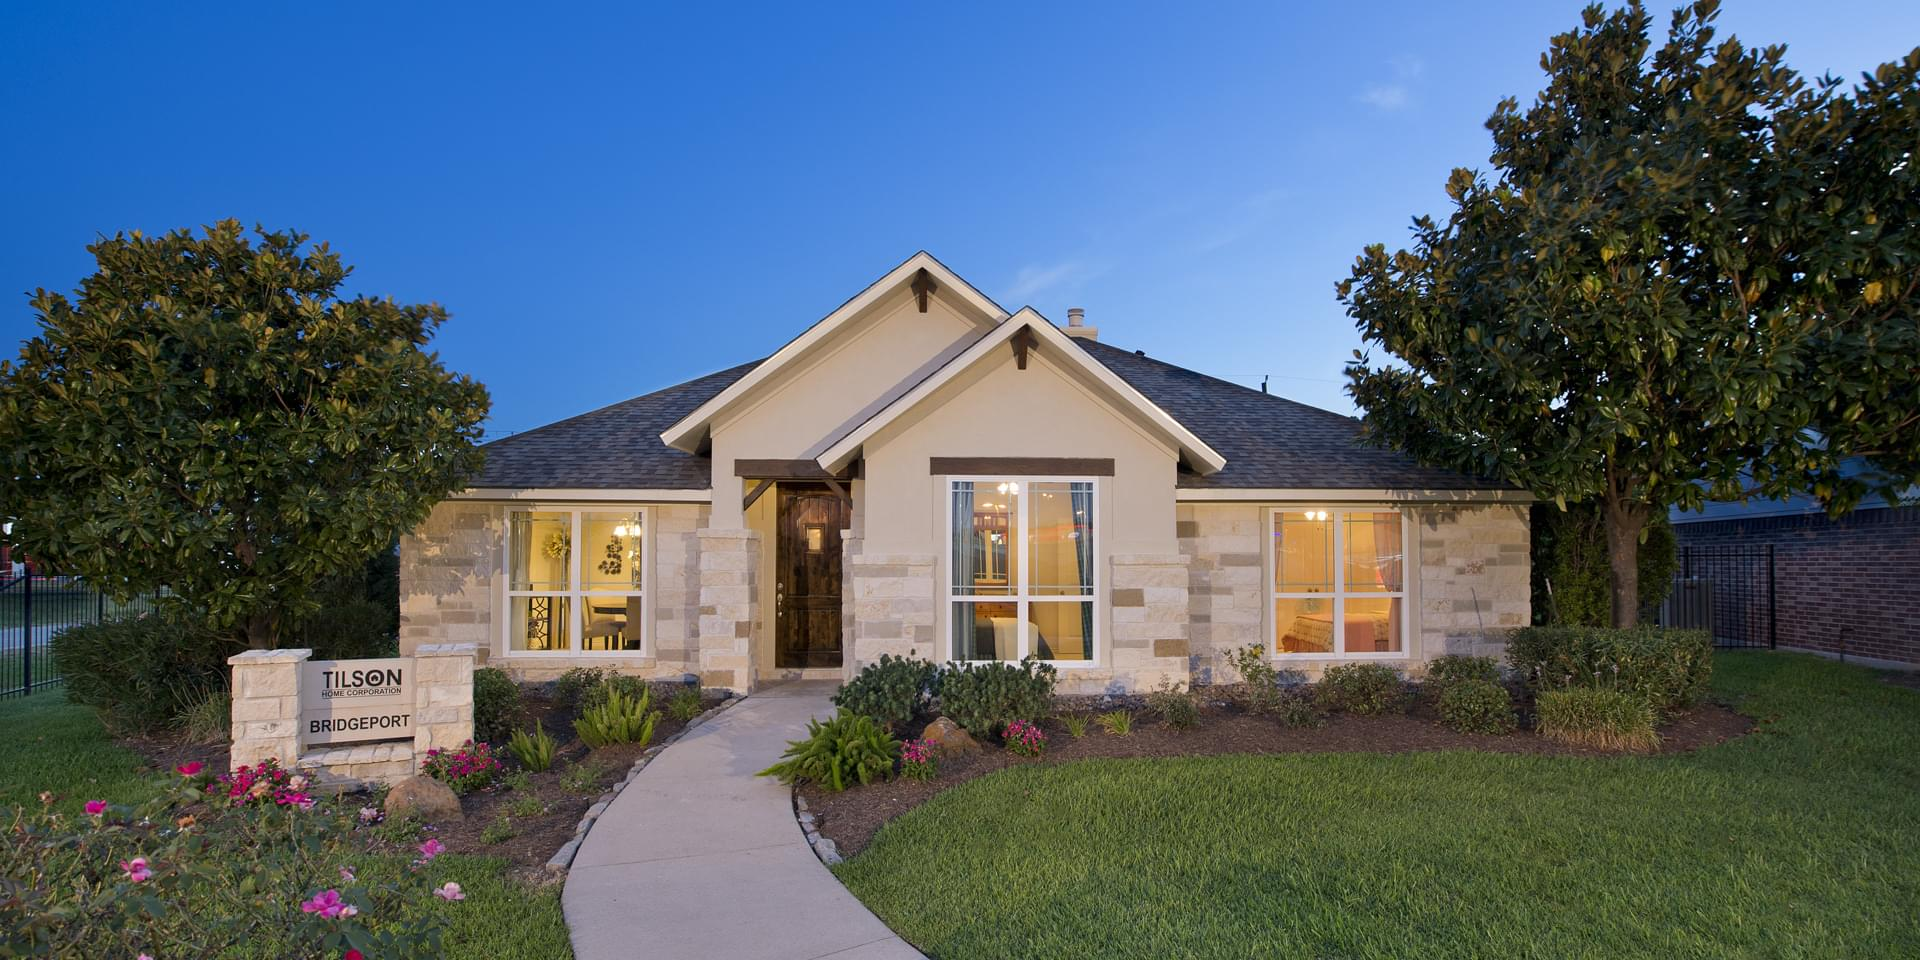 The Bridgeport Custom Home Plan from Tilson Homes